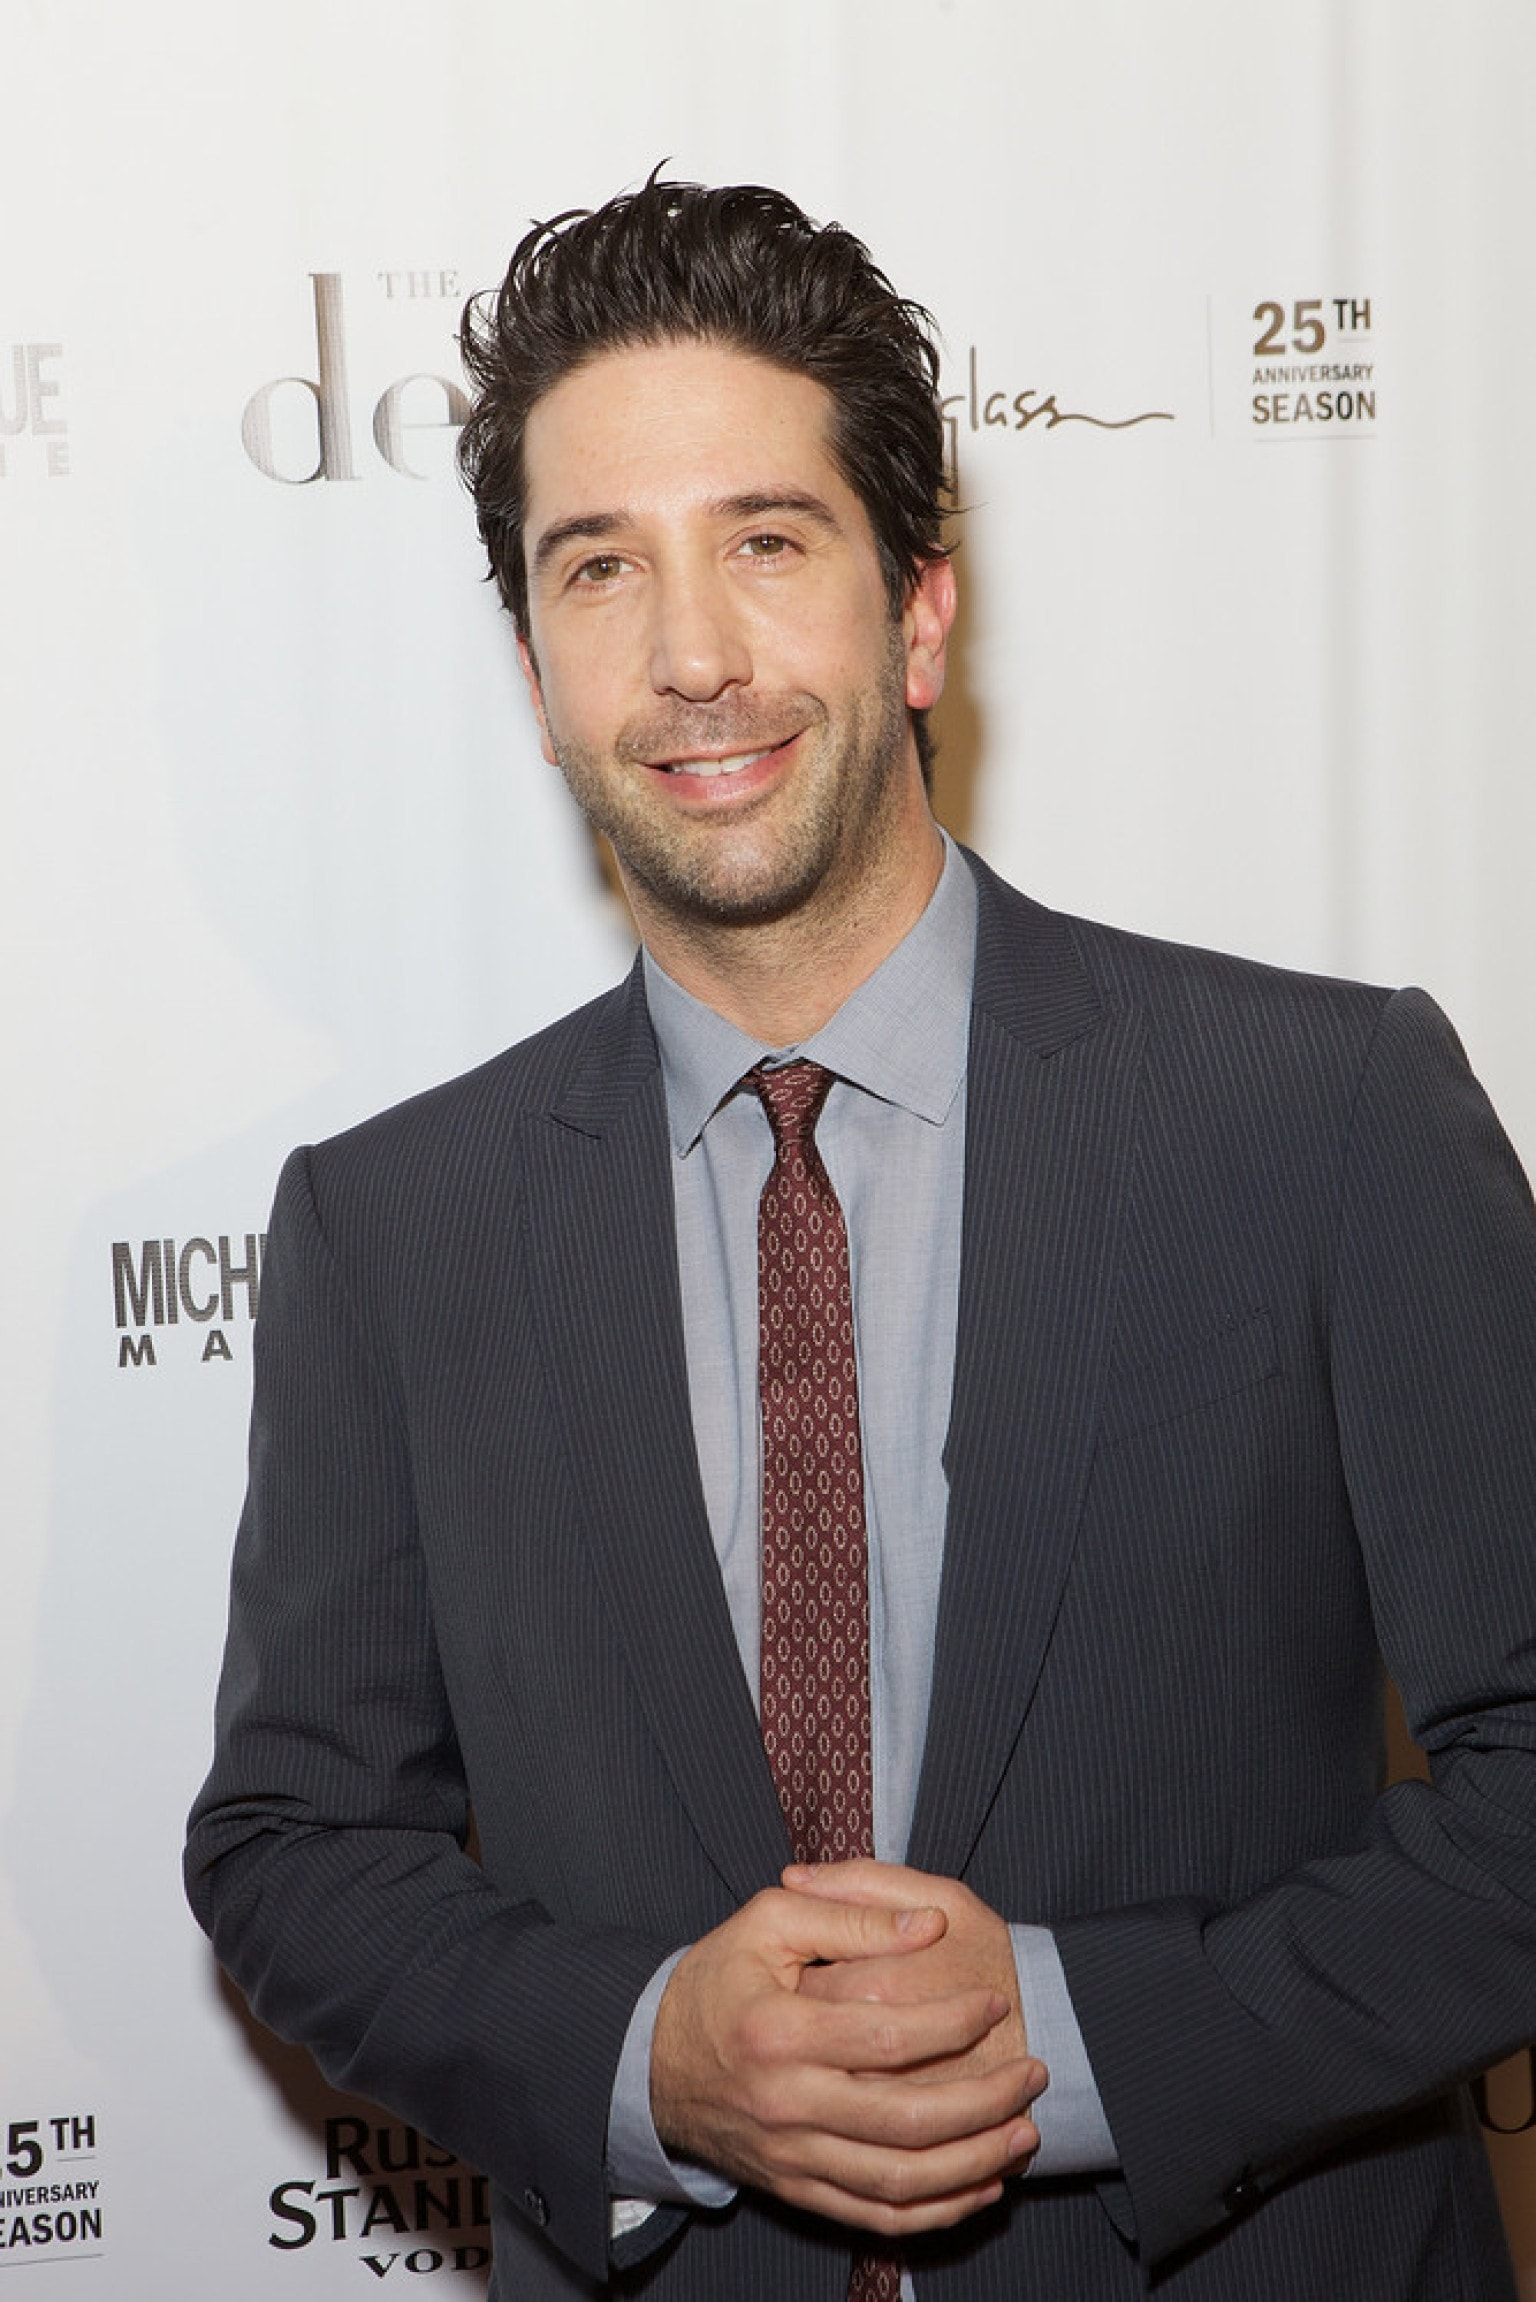 David Schwimmer Wallpapers hd